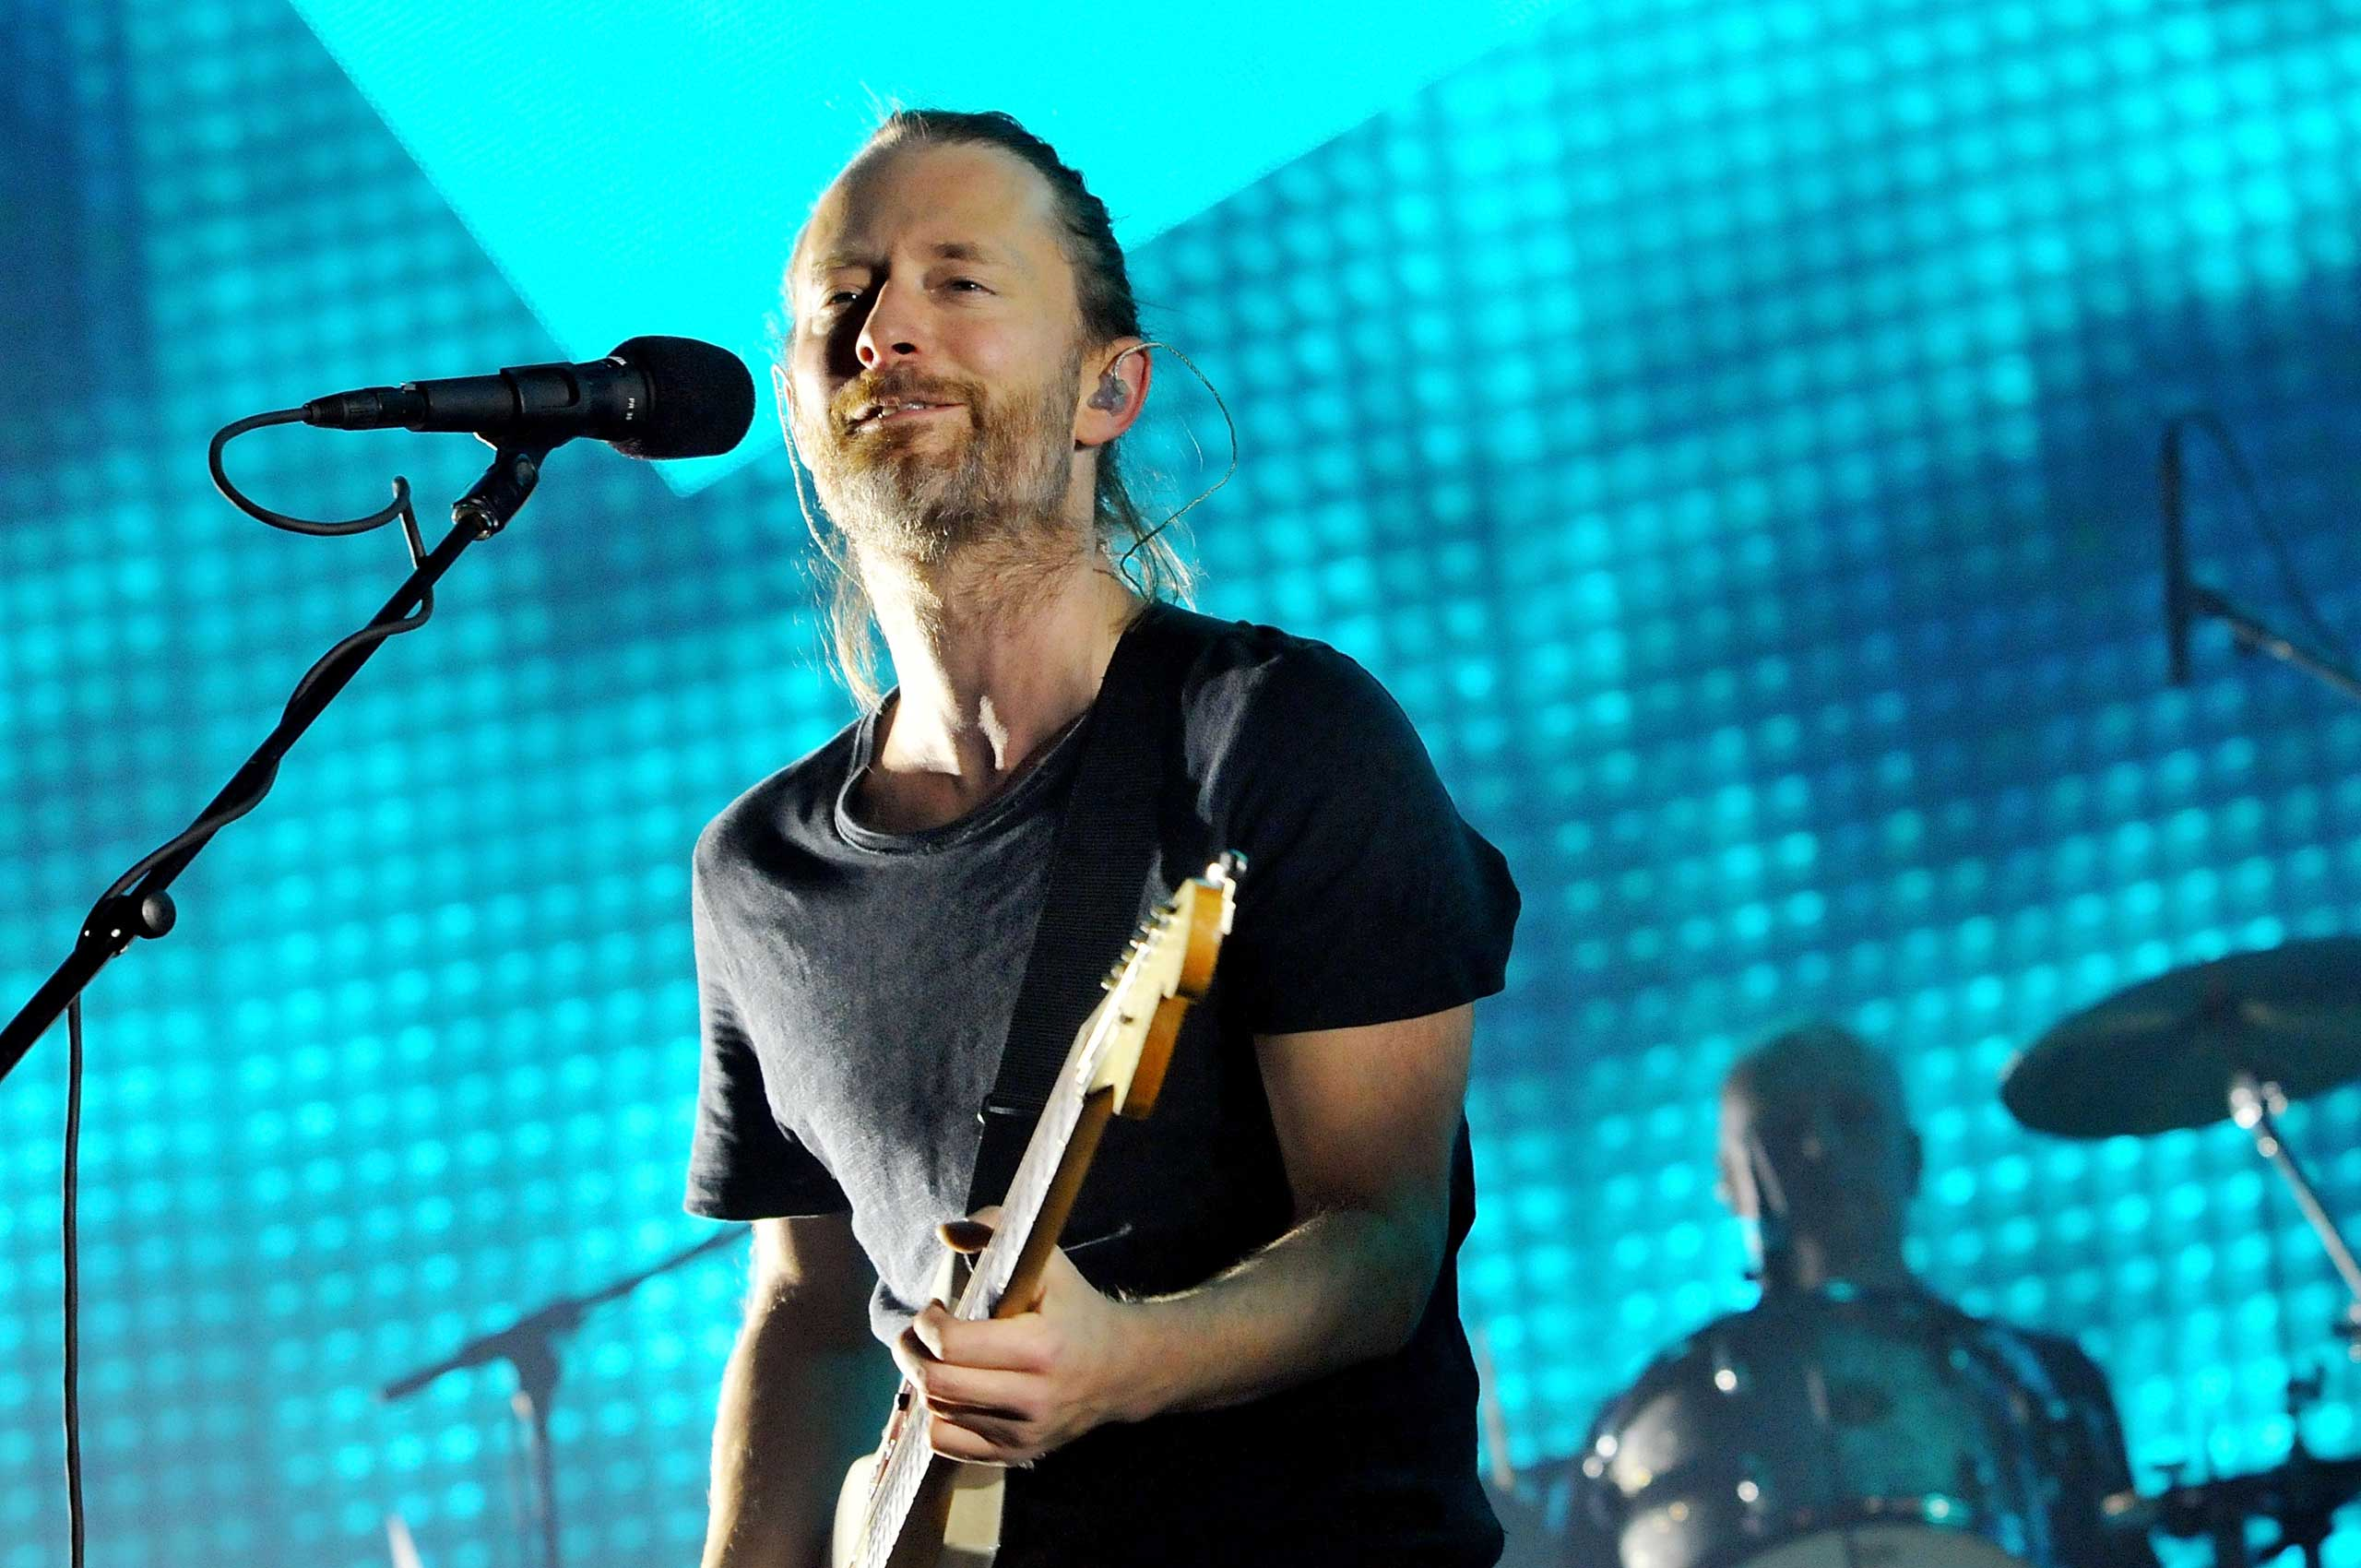 Thom Yorke performs in London, Oct. 8, 2012.